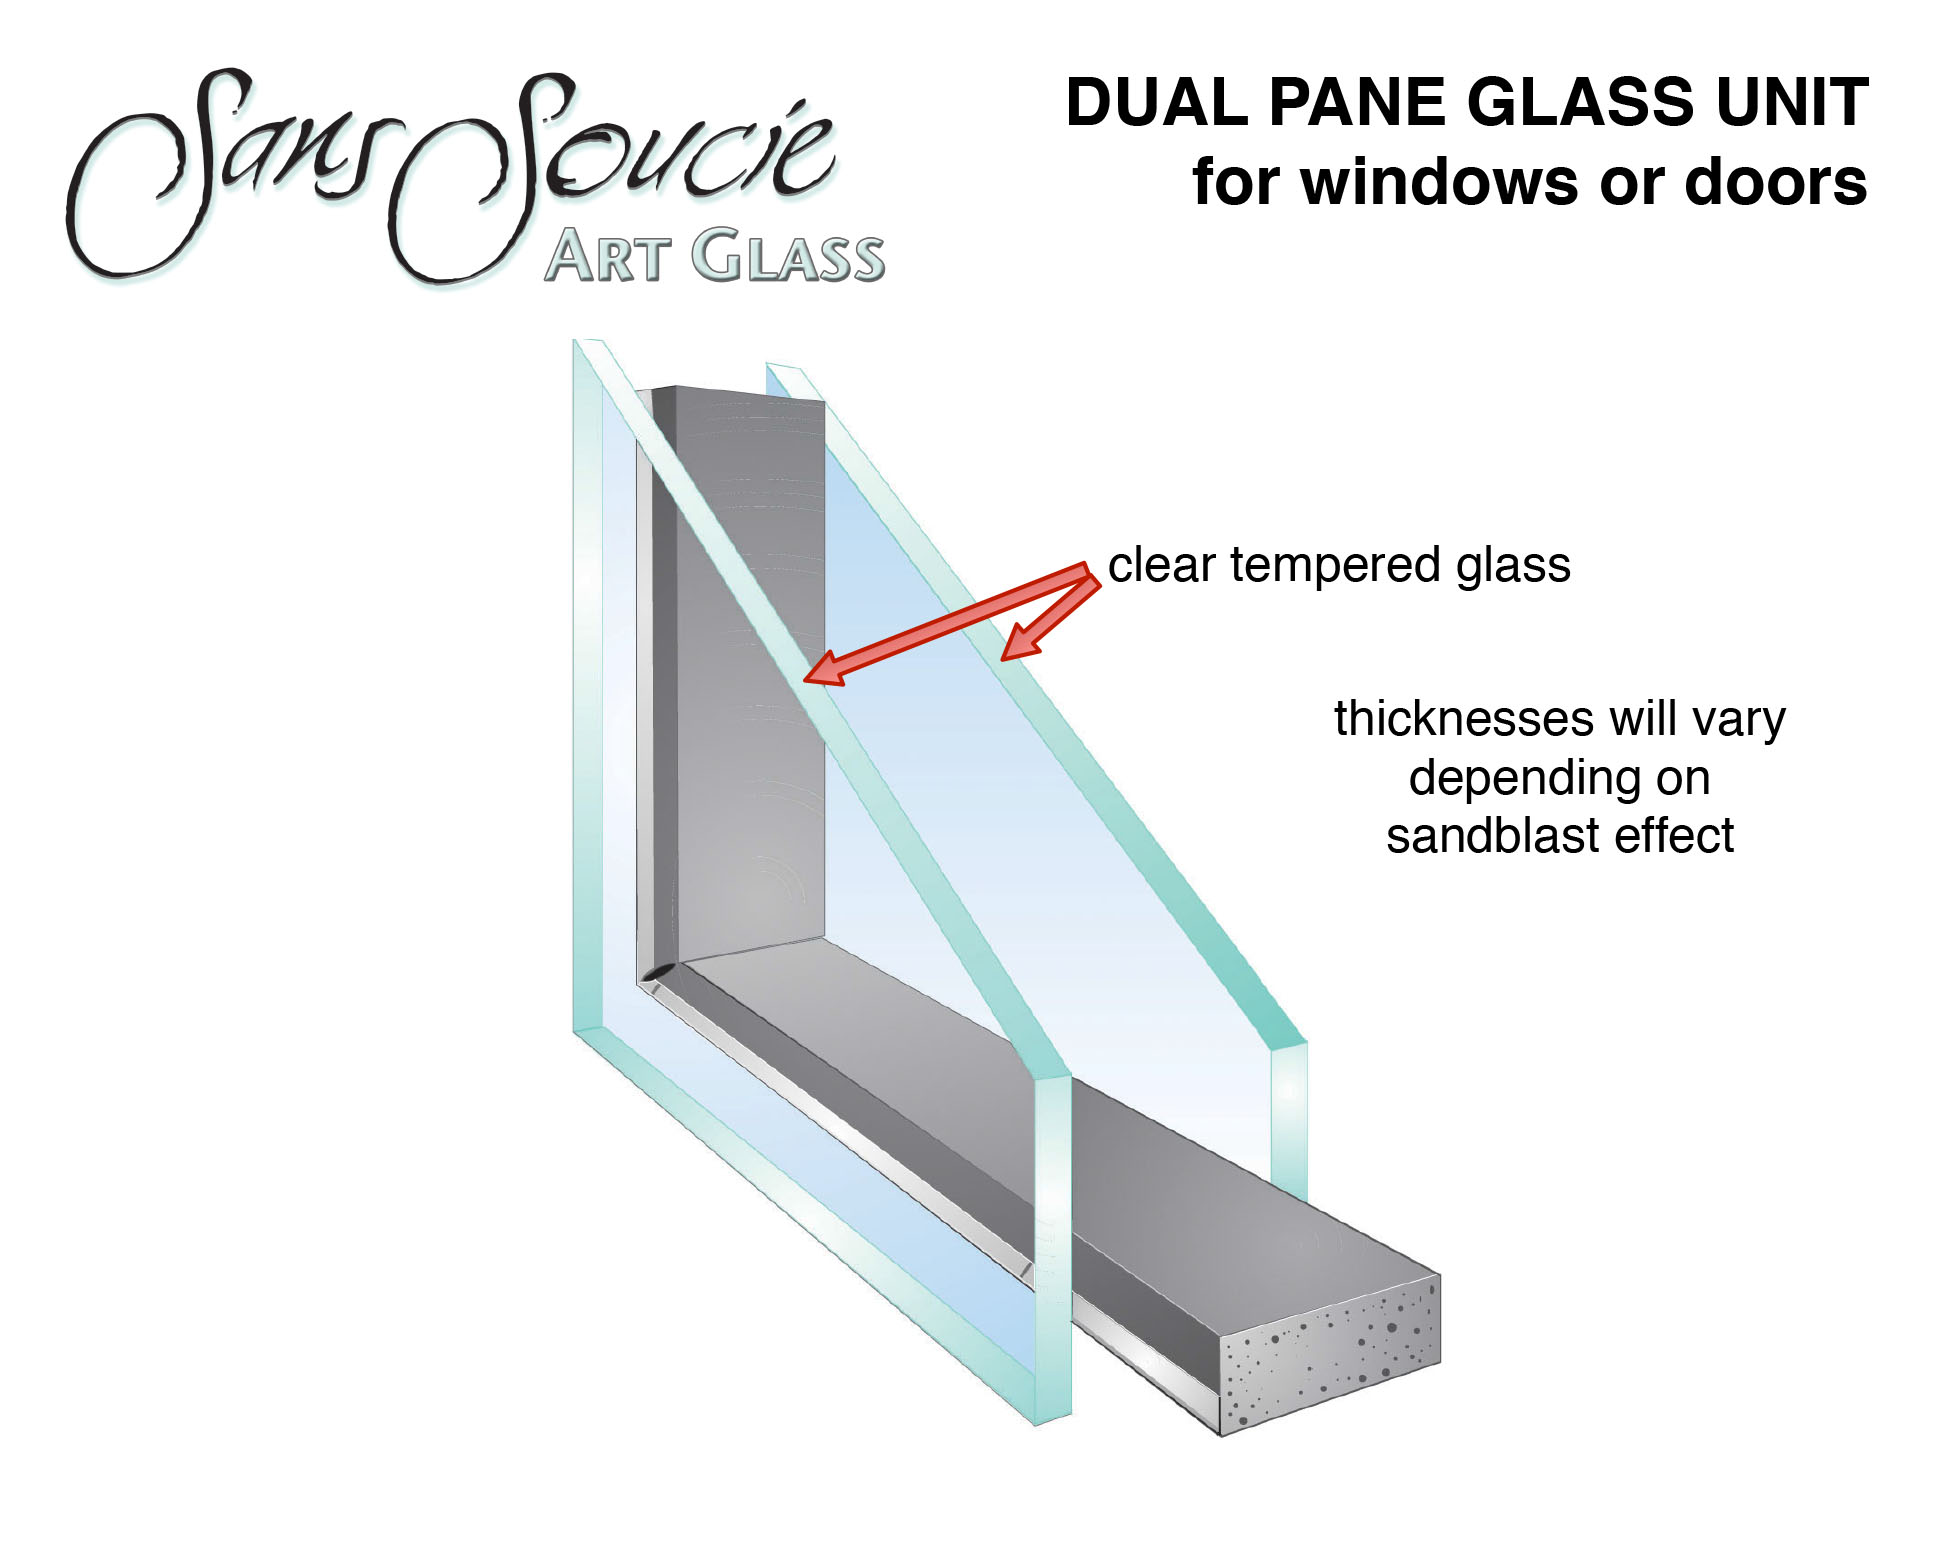 Dual Pane Glass Unit Sans Soucie Art Glass